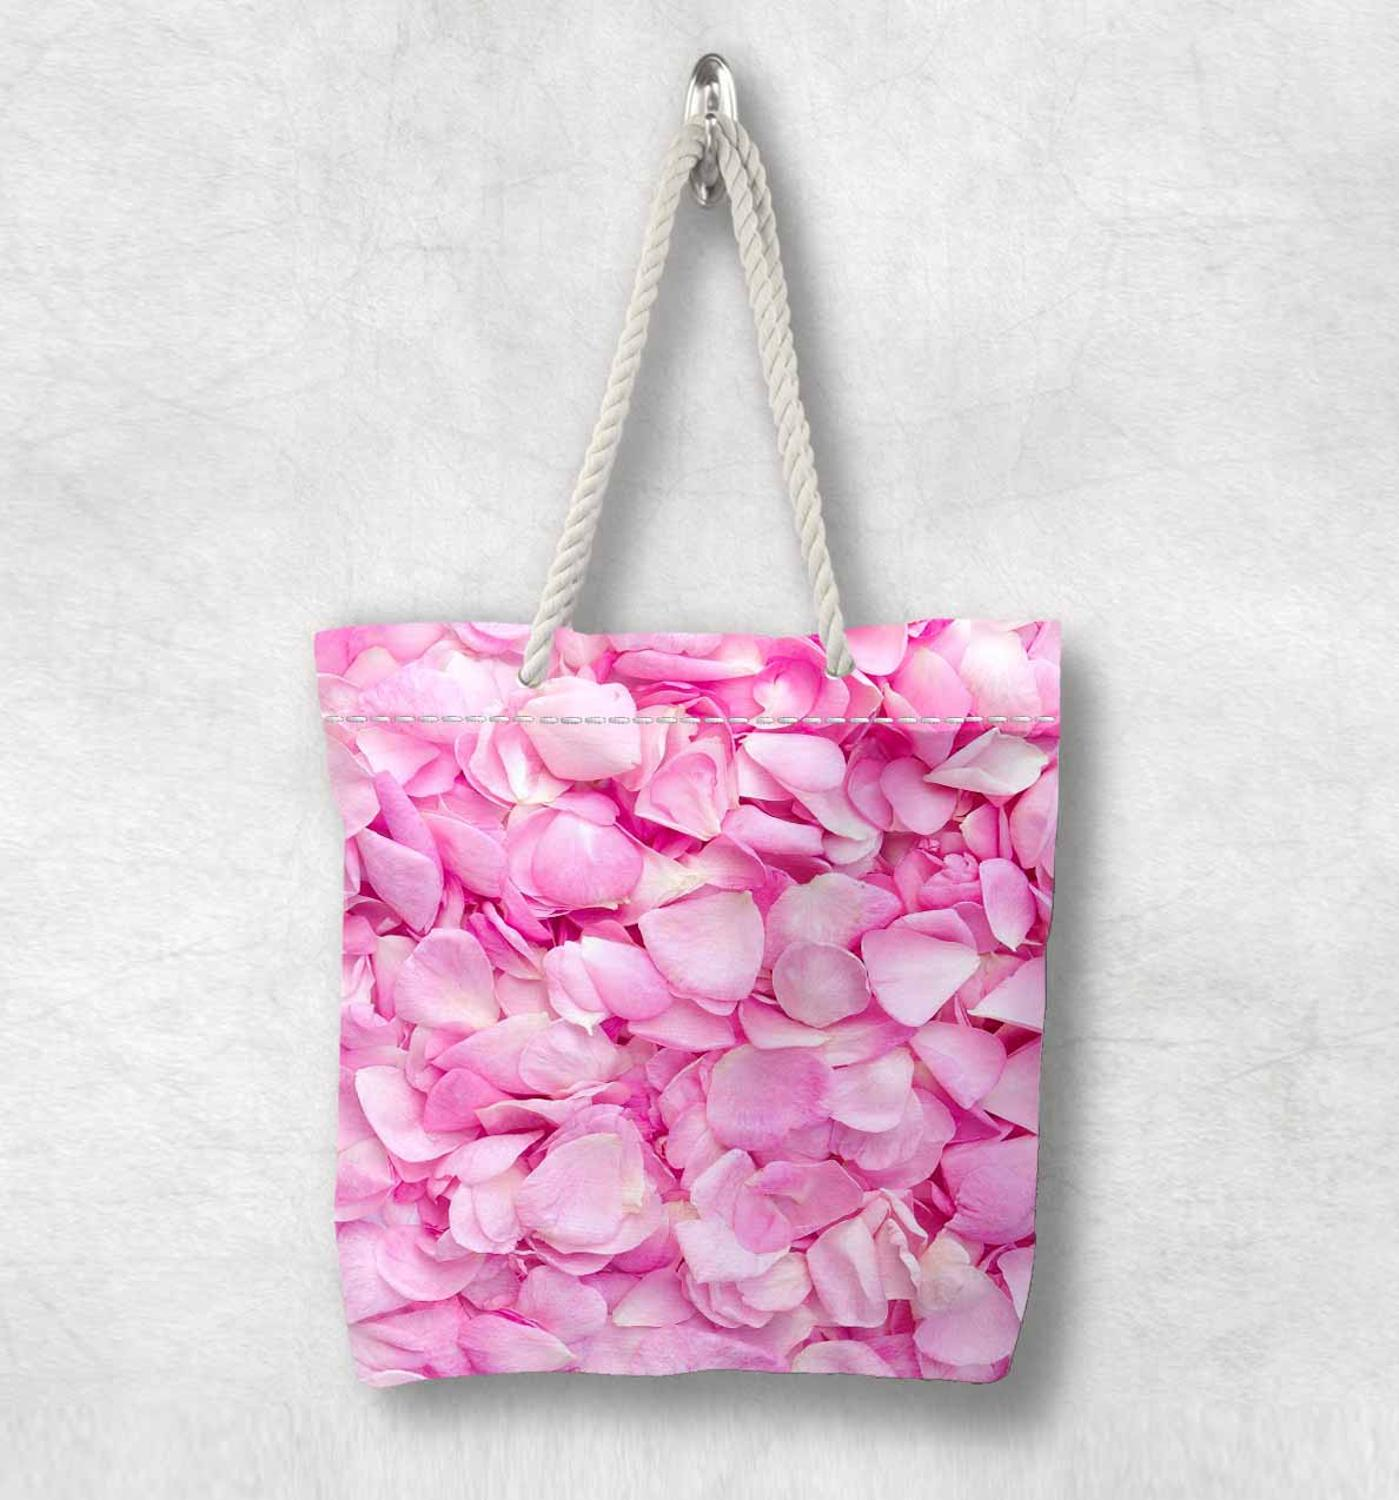 Else Pink Roses Floral Flowers Leaves New Fashion White Rope Handle Canvas Bag Cotton Canvas Zippered Tote Bag Shoulder Bag